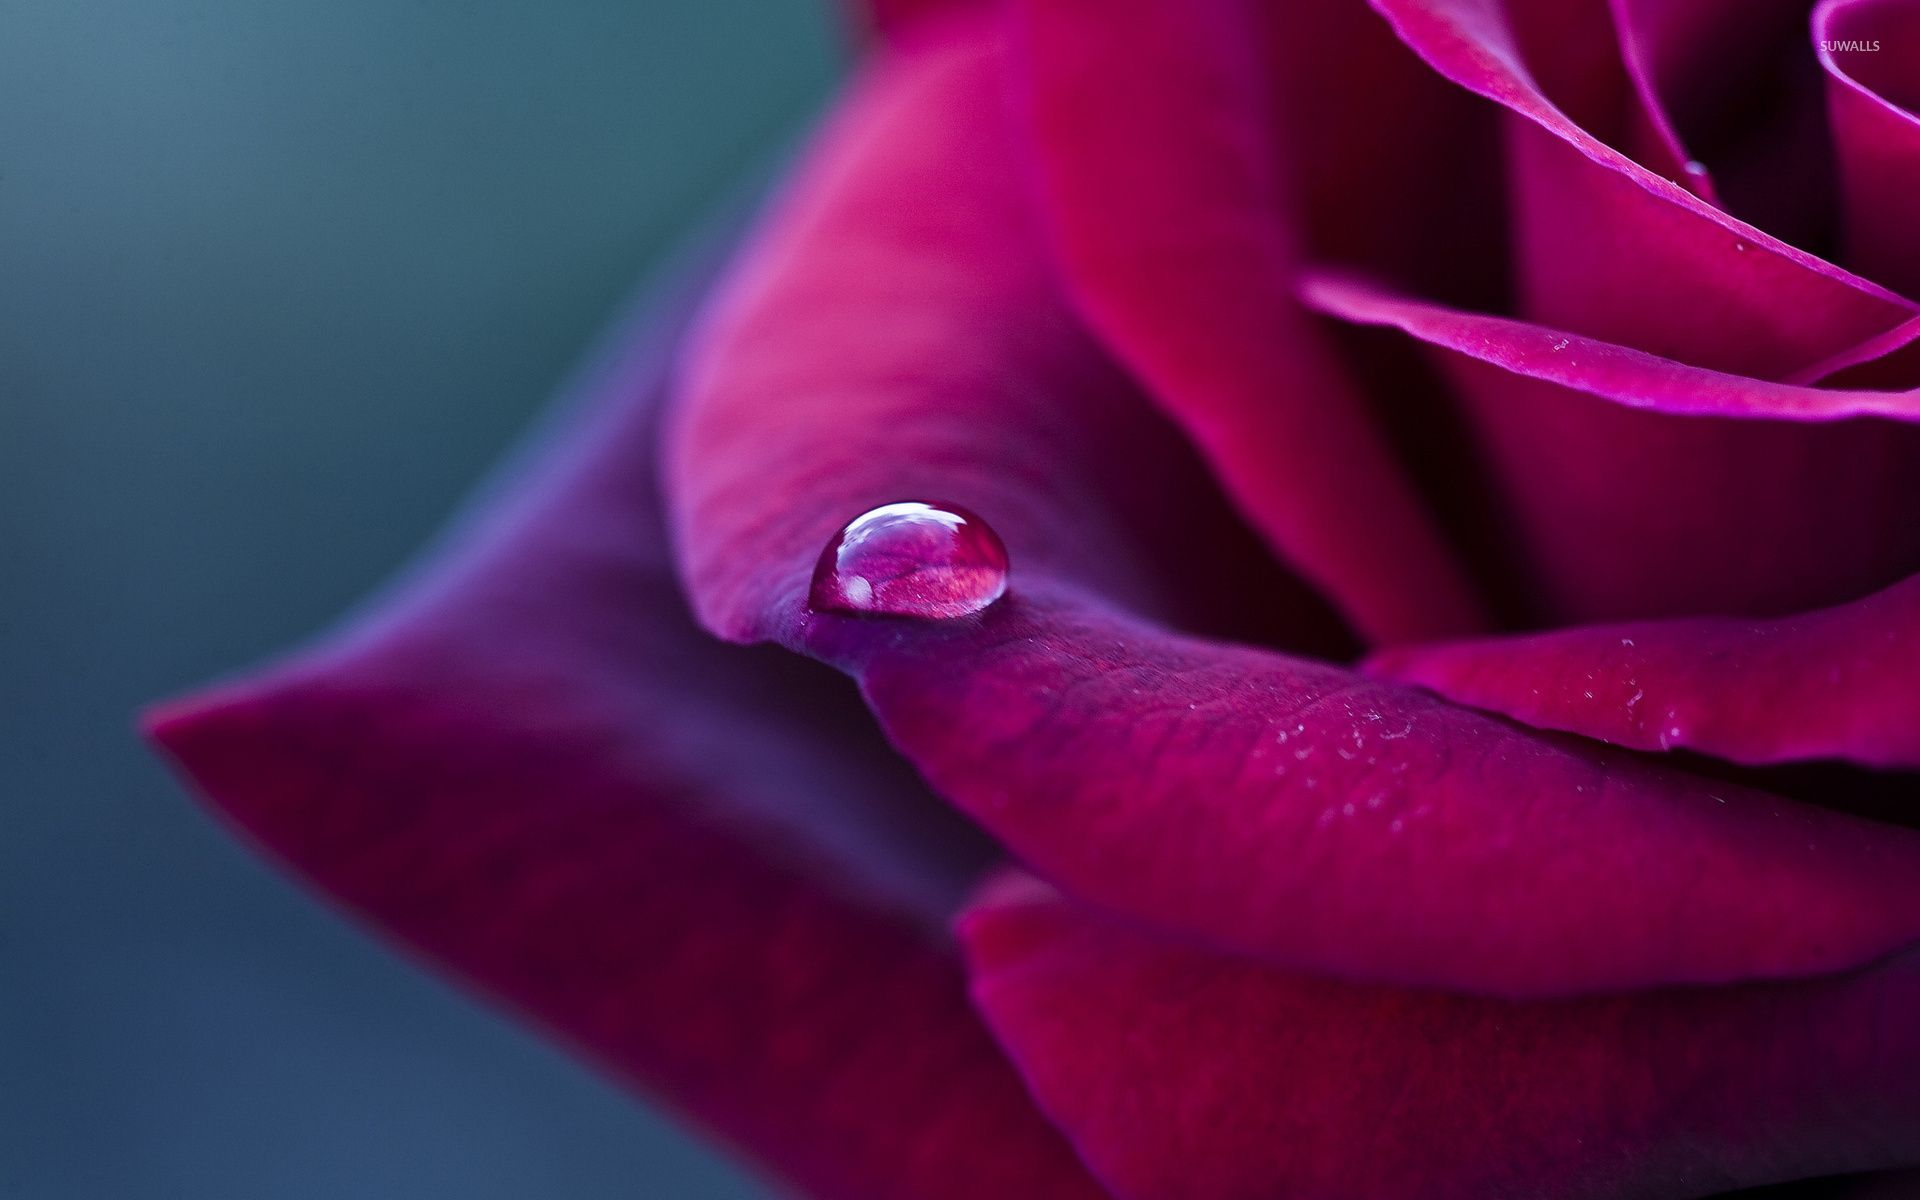 Water drop on a purple rose wallpaper flower wallpapers 42045 water drop on a purple rose wallpaper flower wallpapers 42045 altavistaventures Image collections